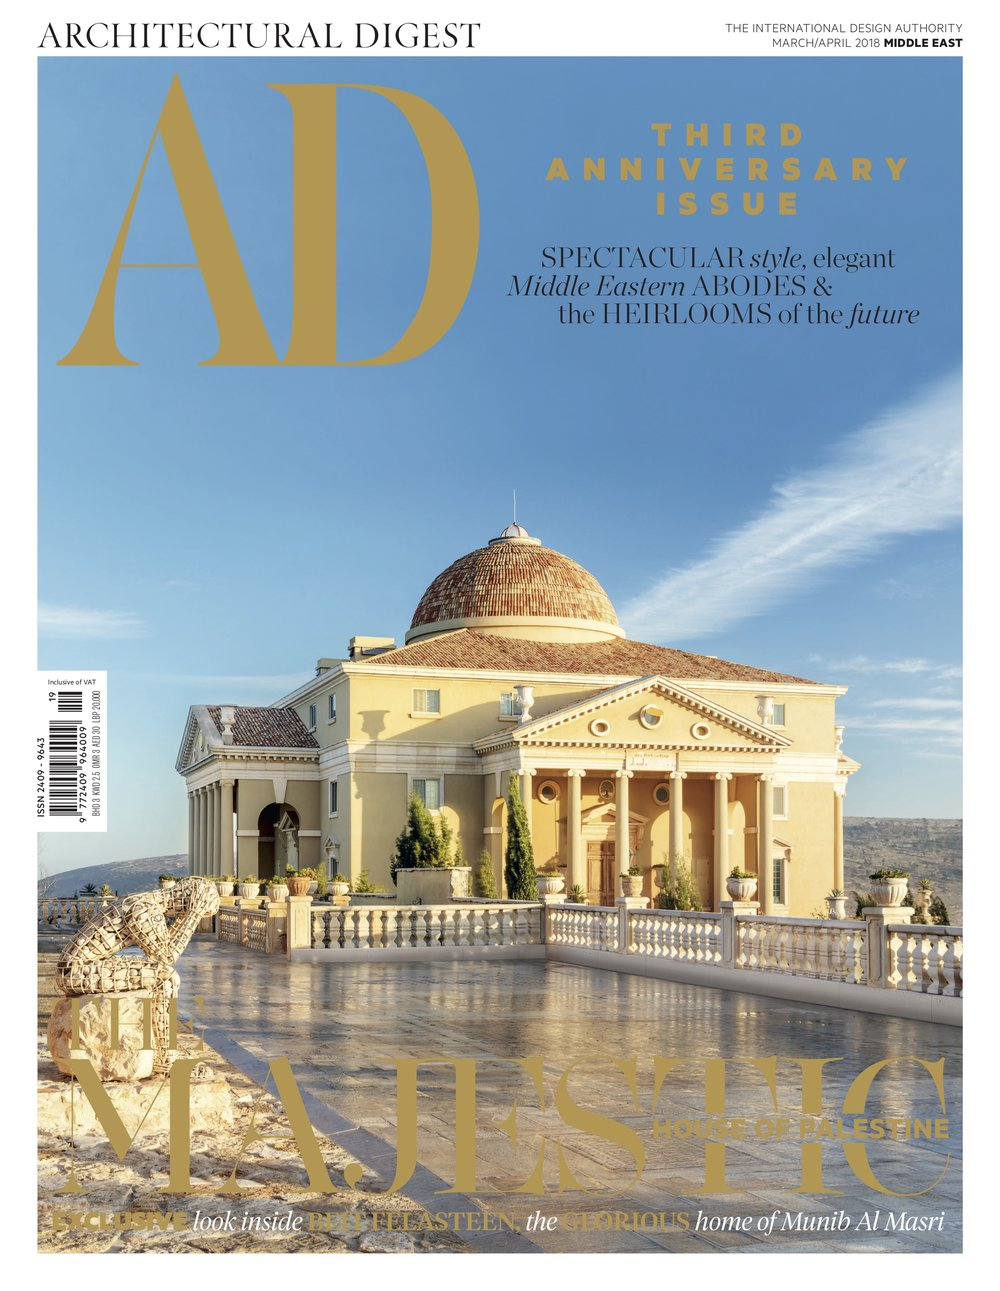 Architectural Digest , Cover and main feature.